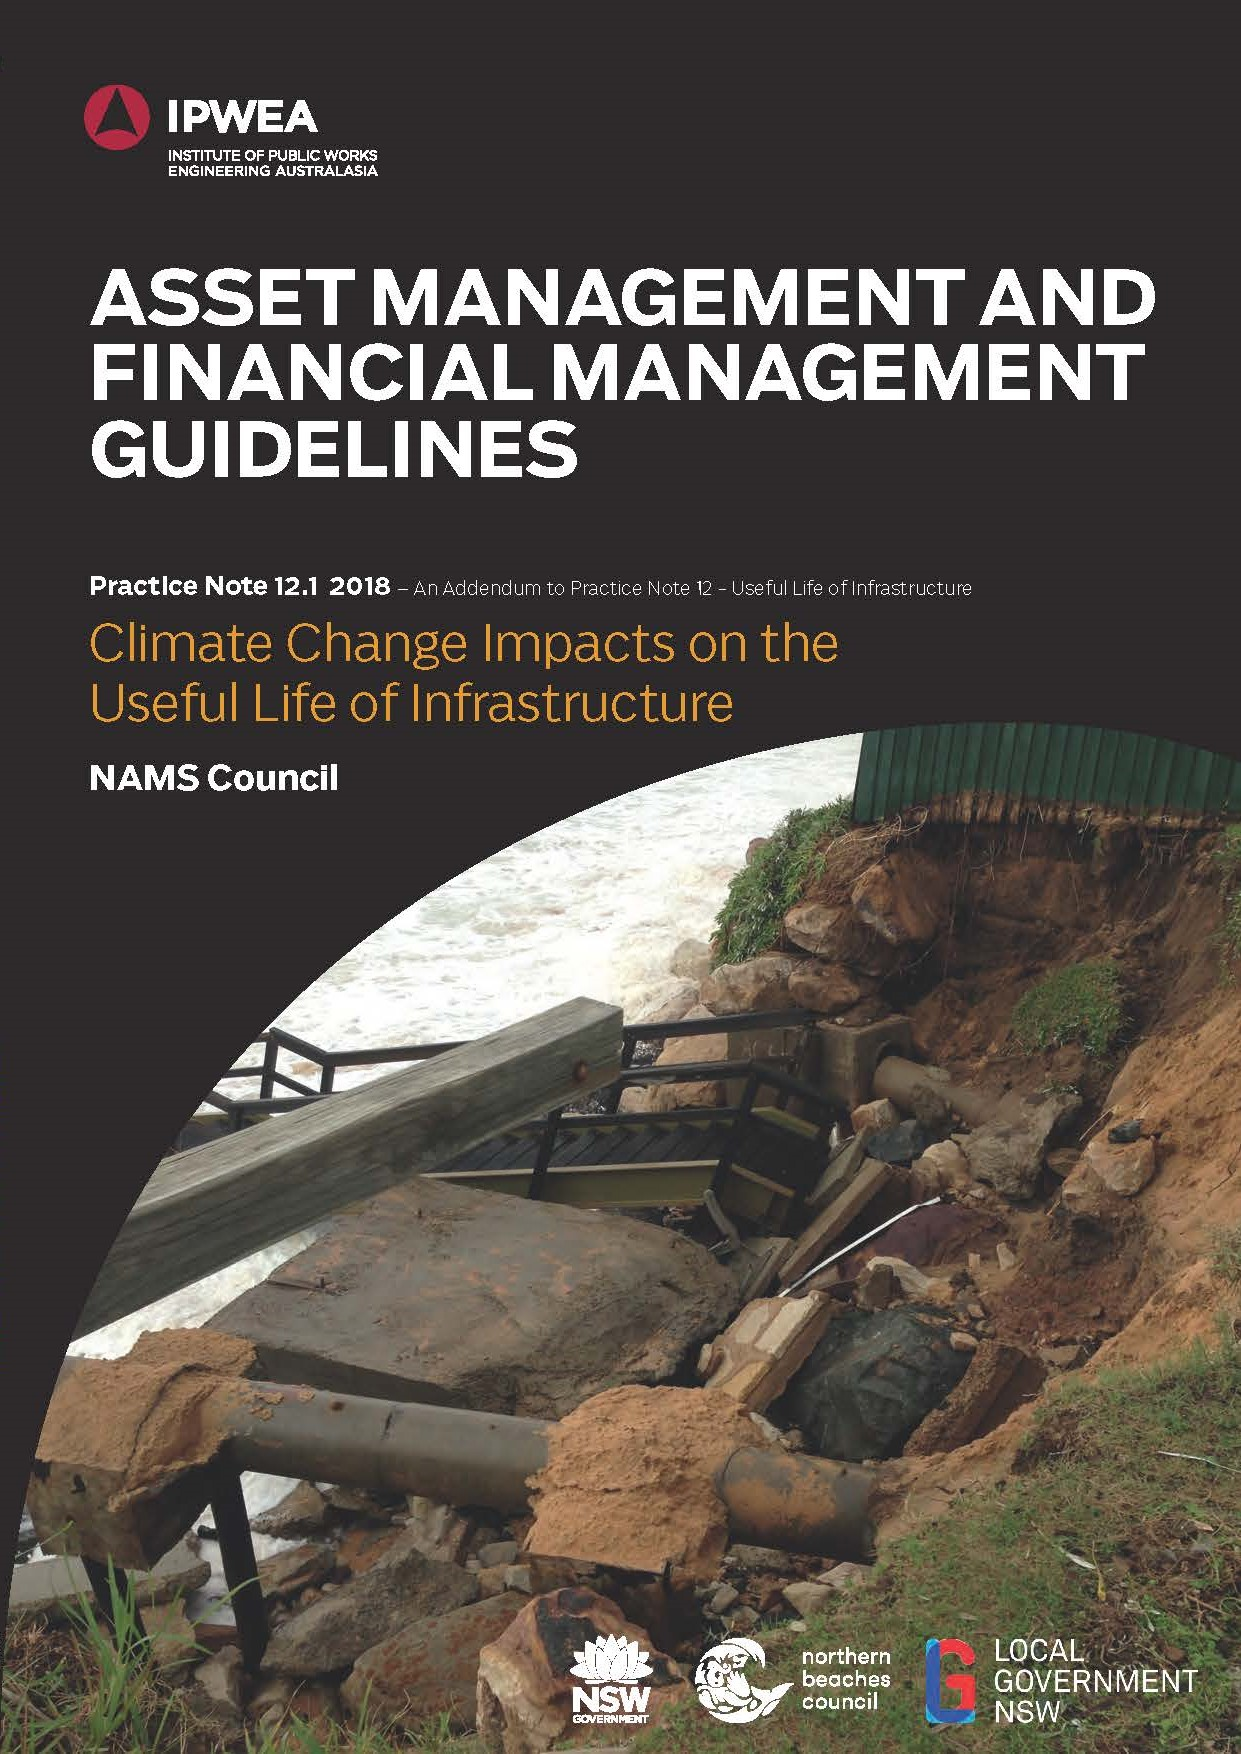 Practice Note 12.1: Climate Change Impacts on the ULOI